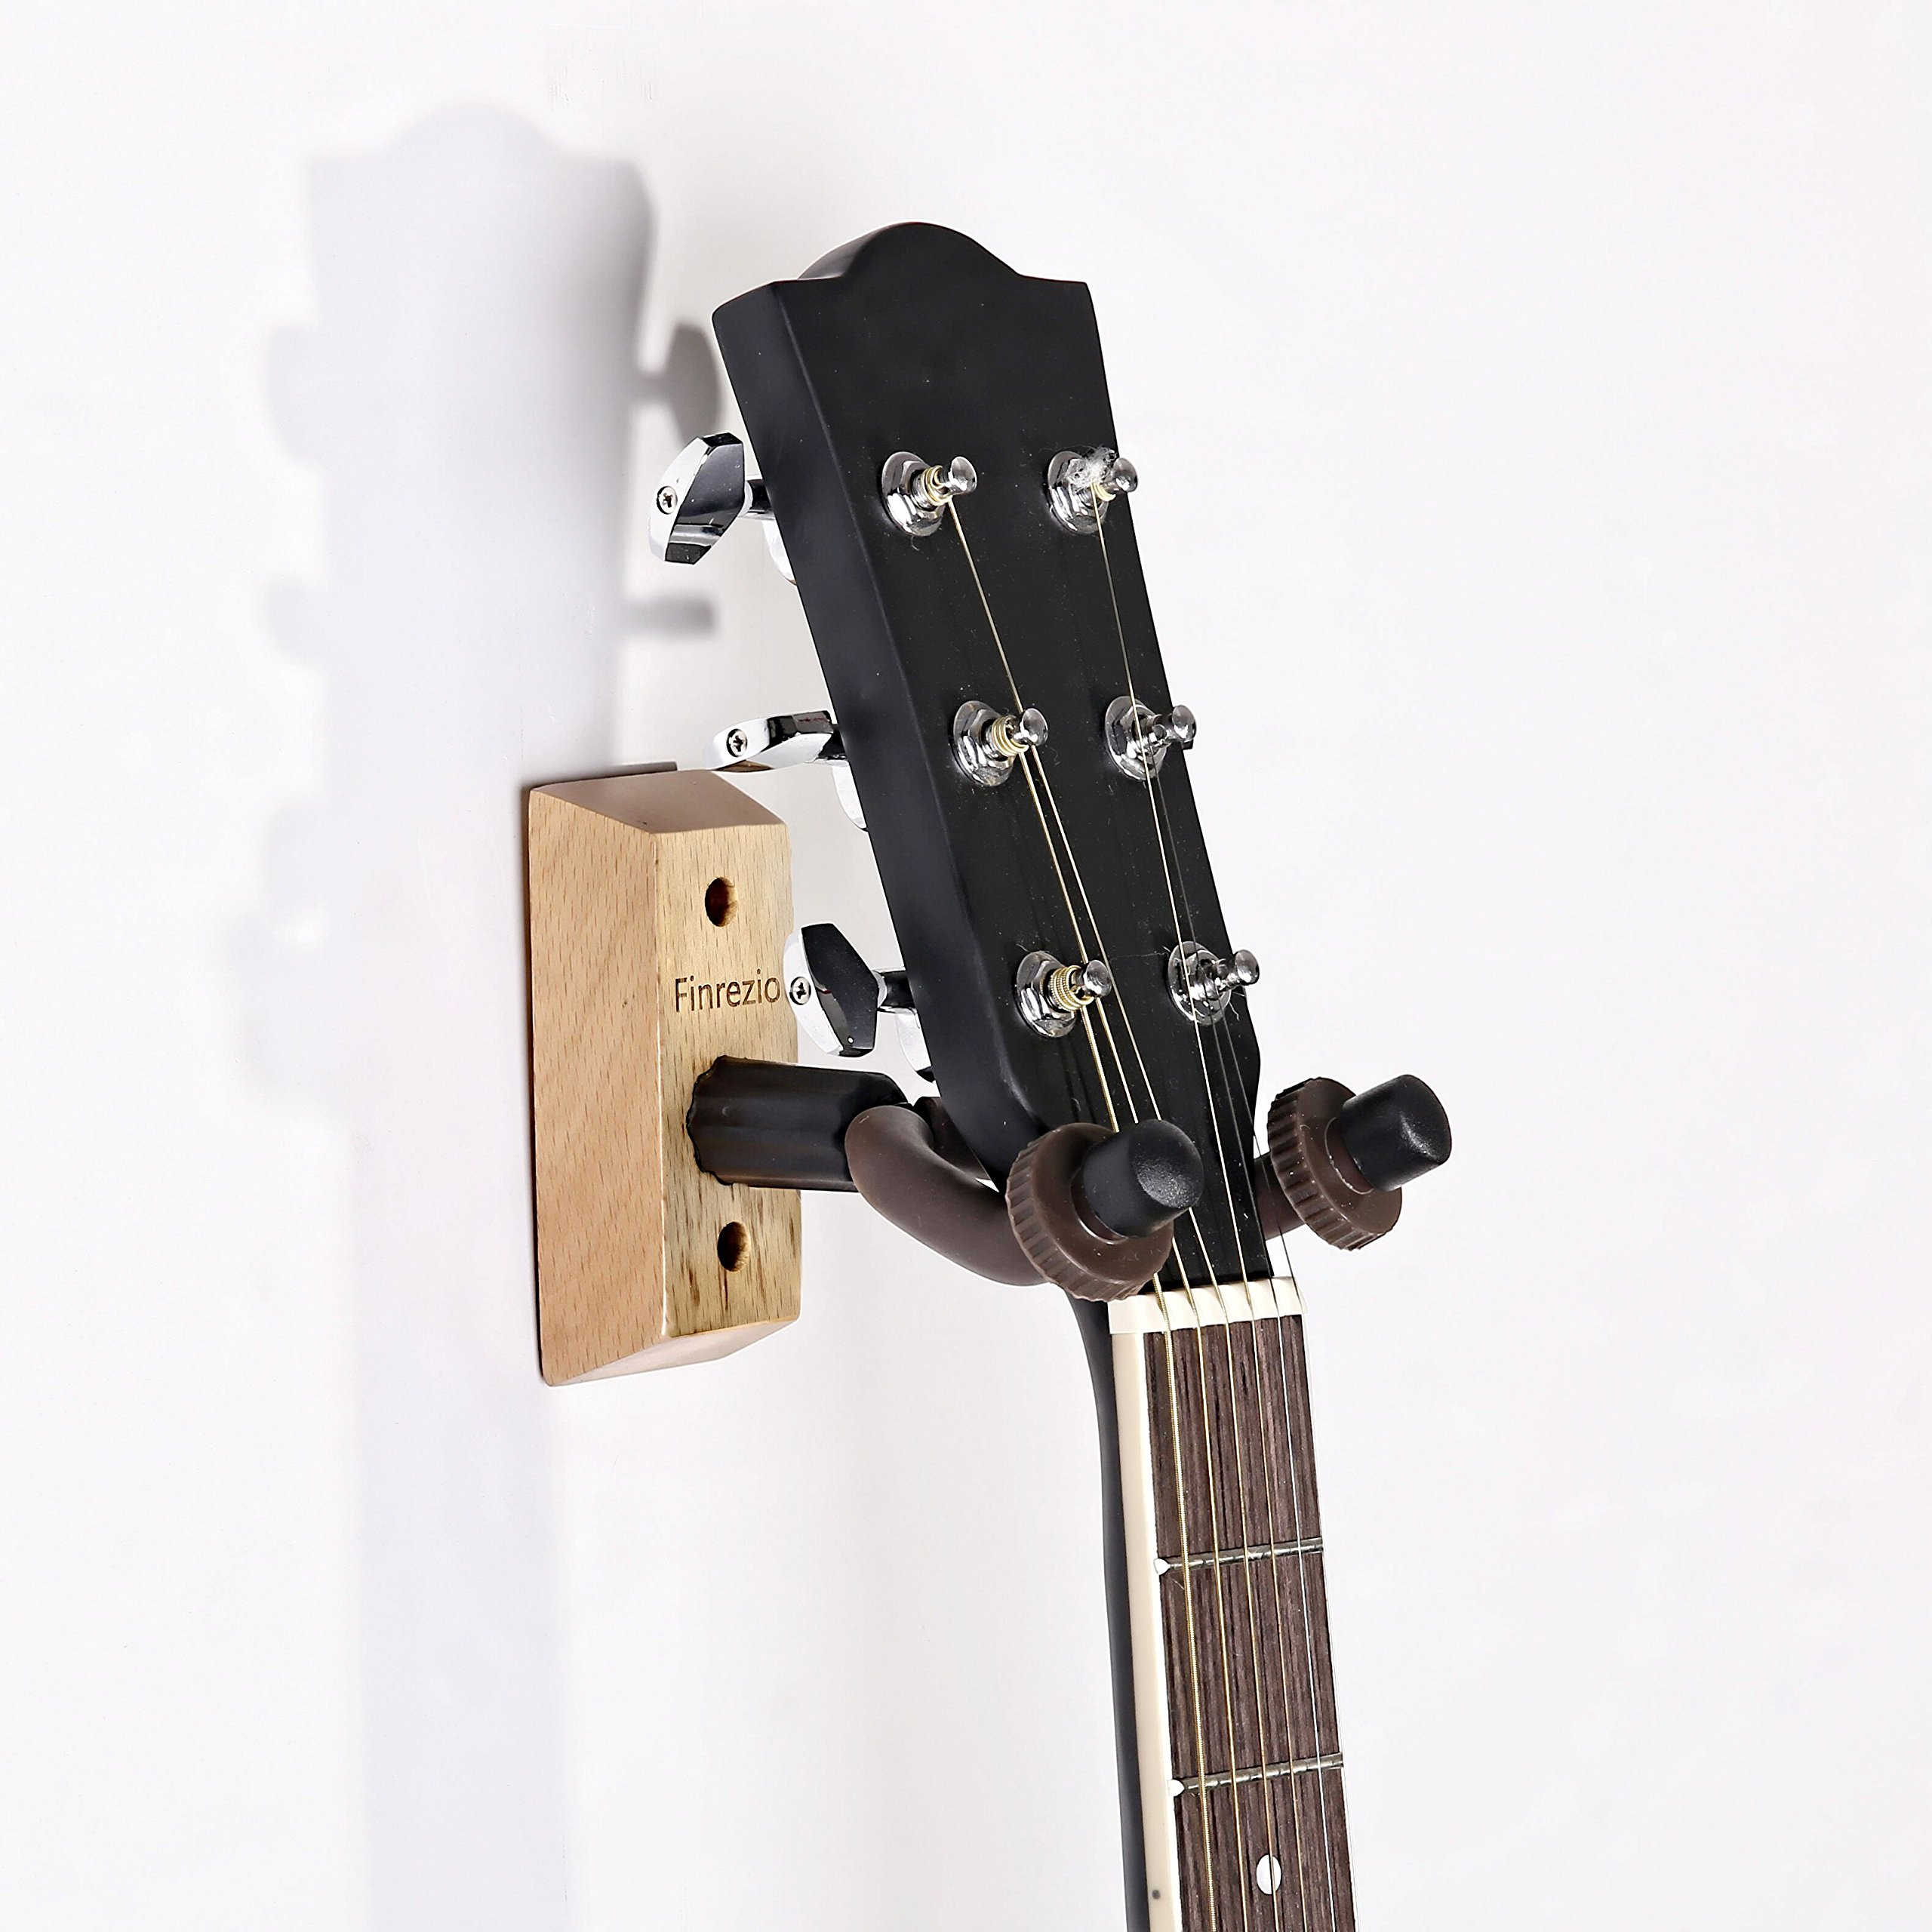 Finrezio Hardwood Home & Studio 6 String Guitar Hanger Holder Keeper Wall Stand,3-Pack by Finrezio (Image #5)